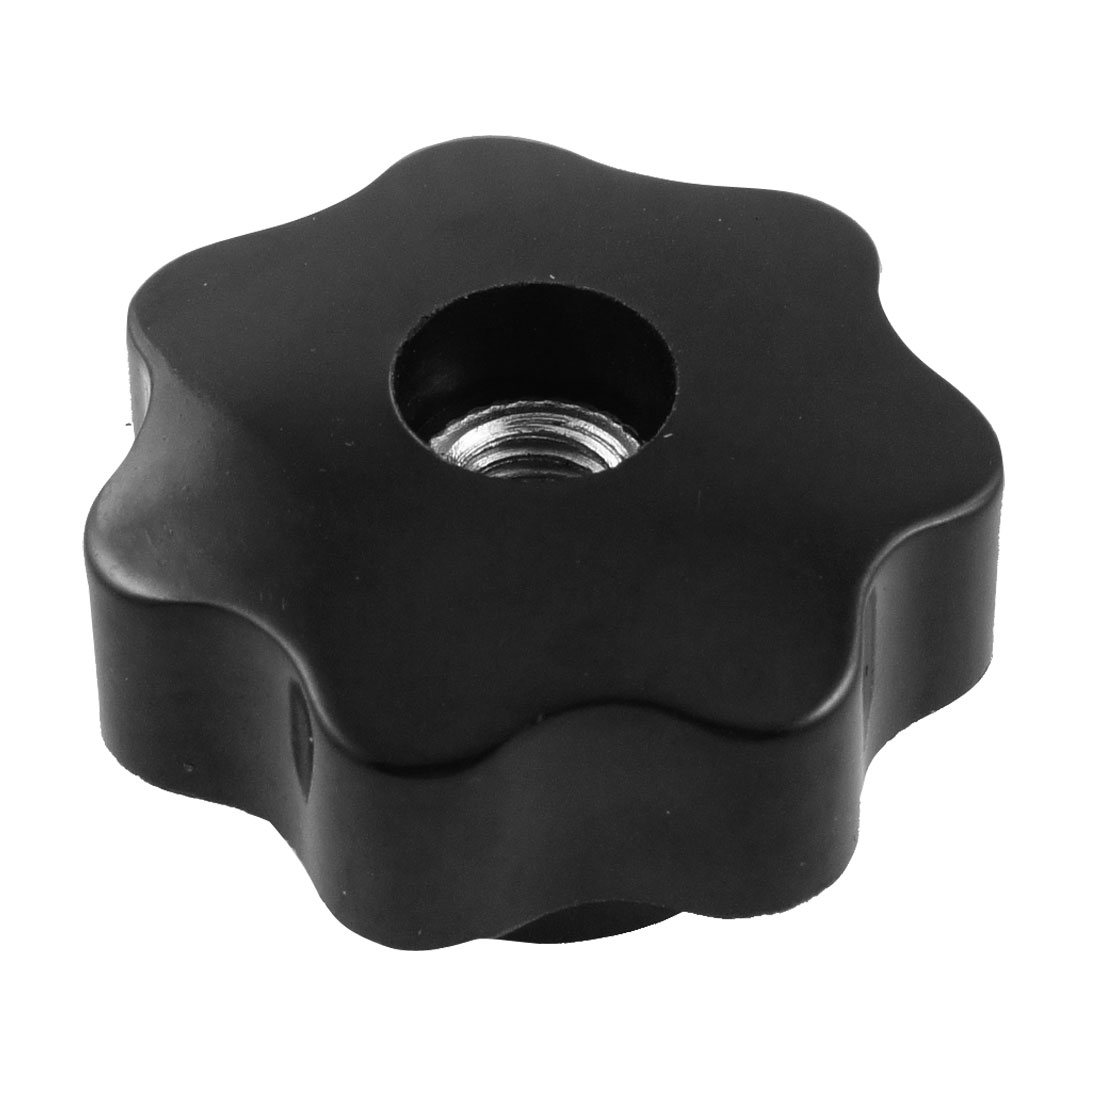 40mm Dia Black Plastic Star Head Clamping Knob Black Silver Tone